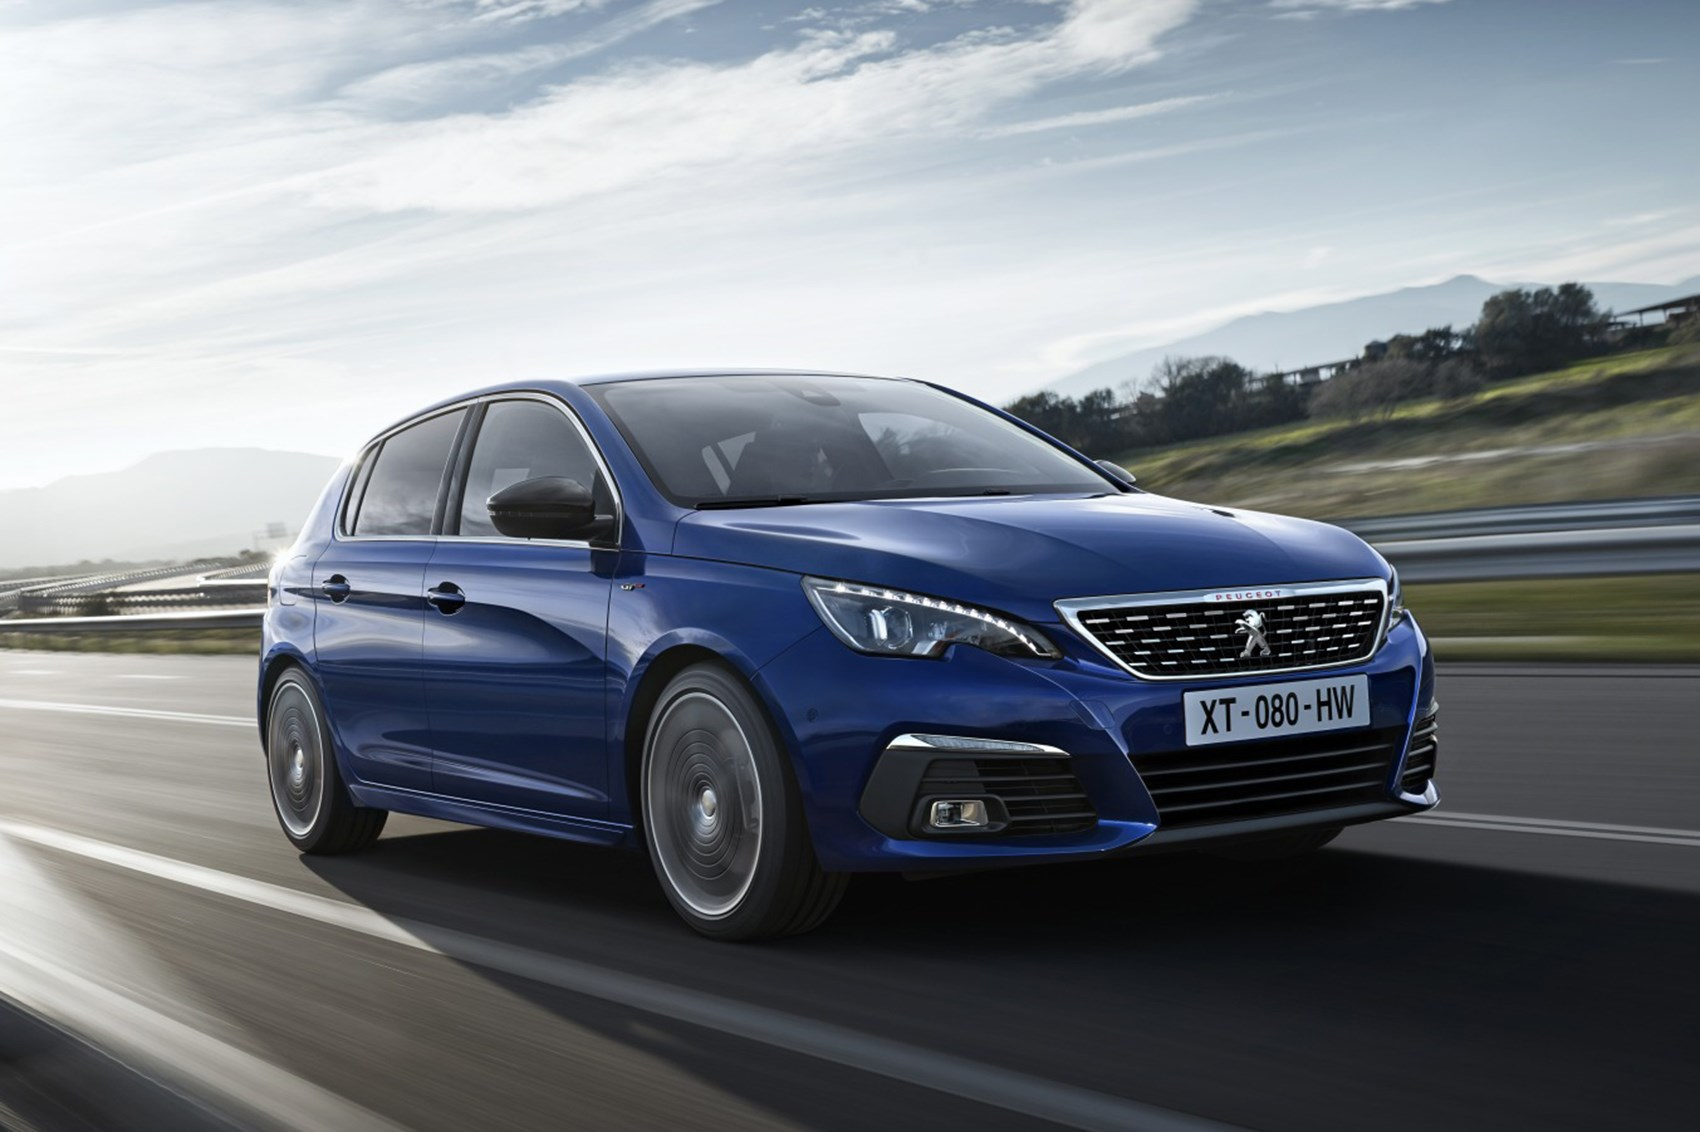 tech two facelifted peugeot 308 has fleet appeal parkers the 10 best fun sports car for 10k undo advertisement facelifted peugeot 308 2017 peugeot 308 facelift blue driving